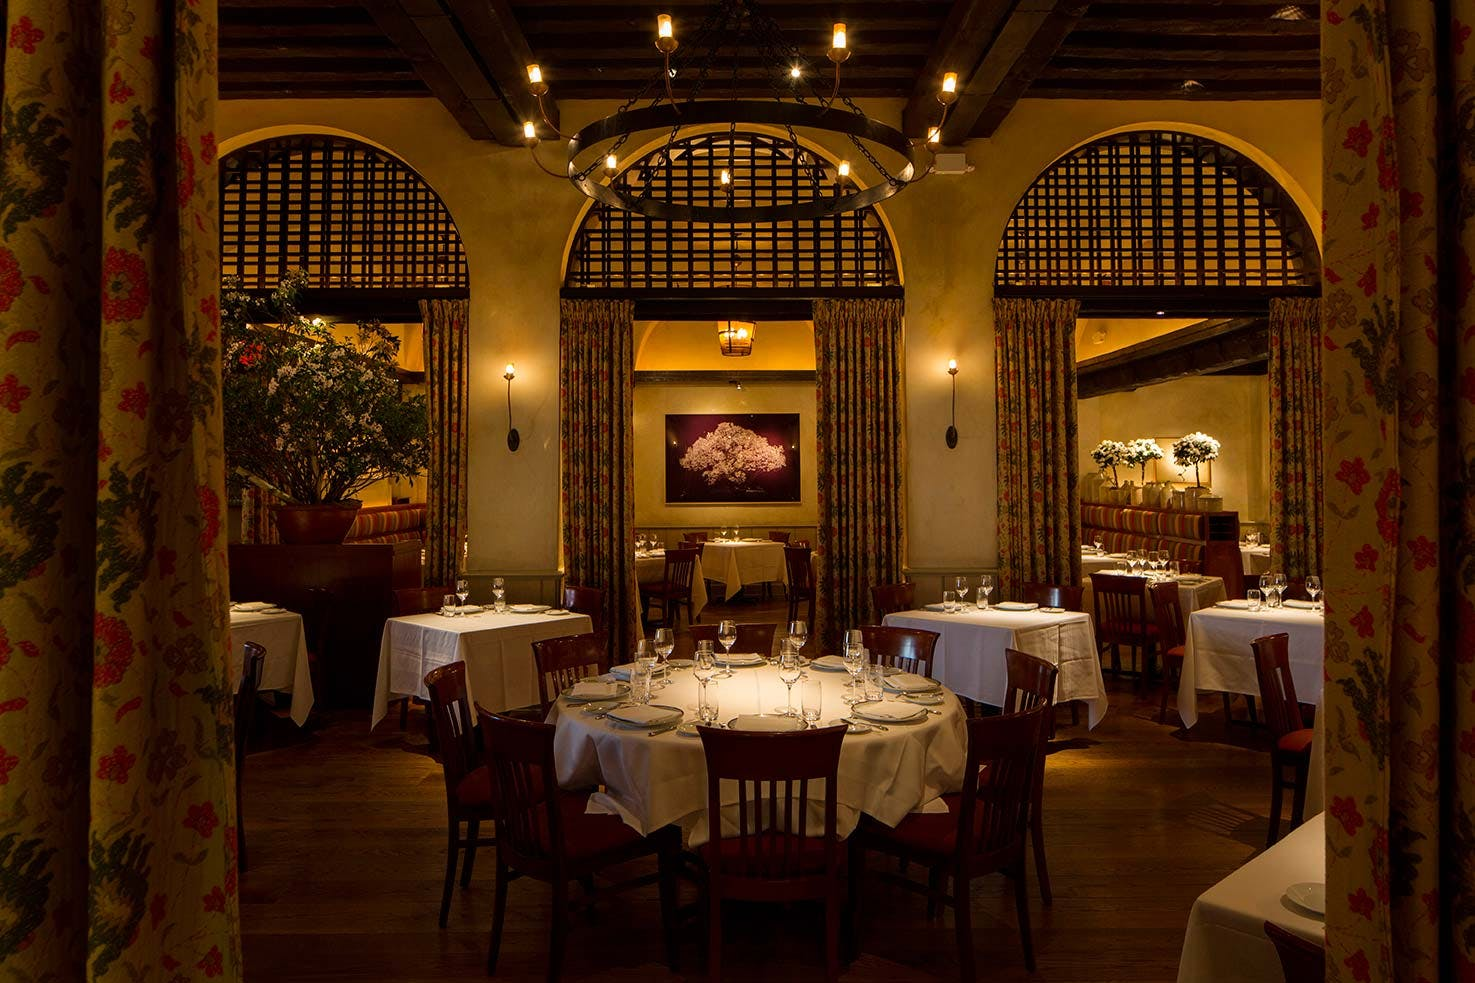 The Dining Room. Food   Drink   Seasonal Fine Dining in New York City